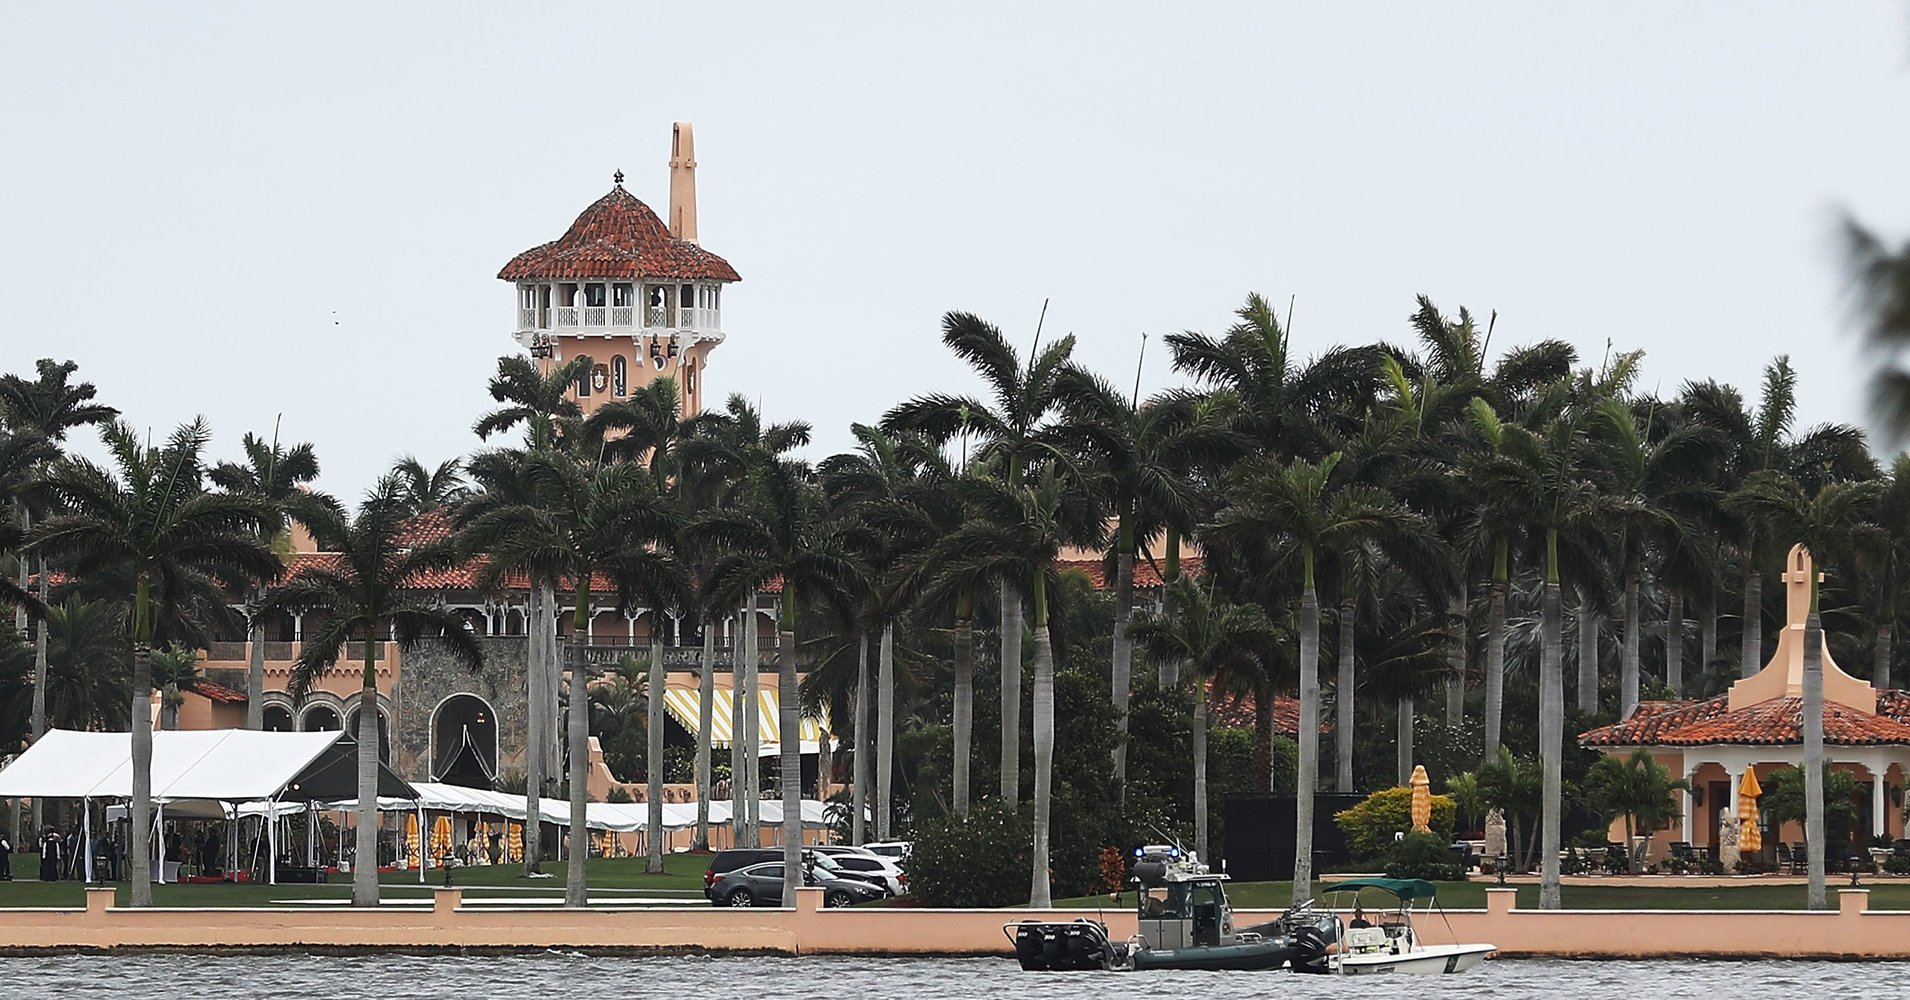 More nonprofits pull fundraisers from Mar-a-Lago after Trump defends white supremacists https://t.co/kbWGTYanO7 https://t.co/hrkHJ5gTlw